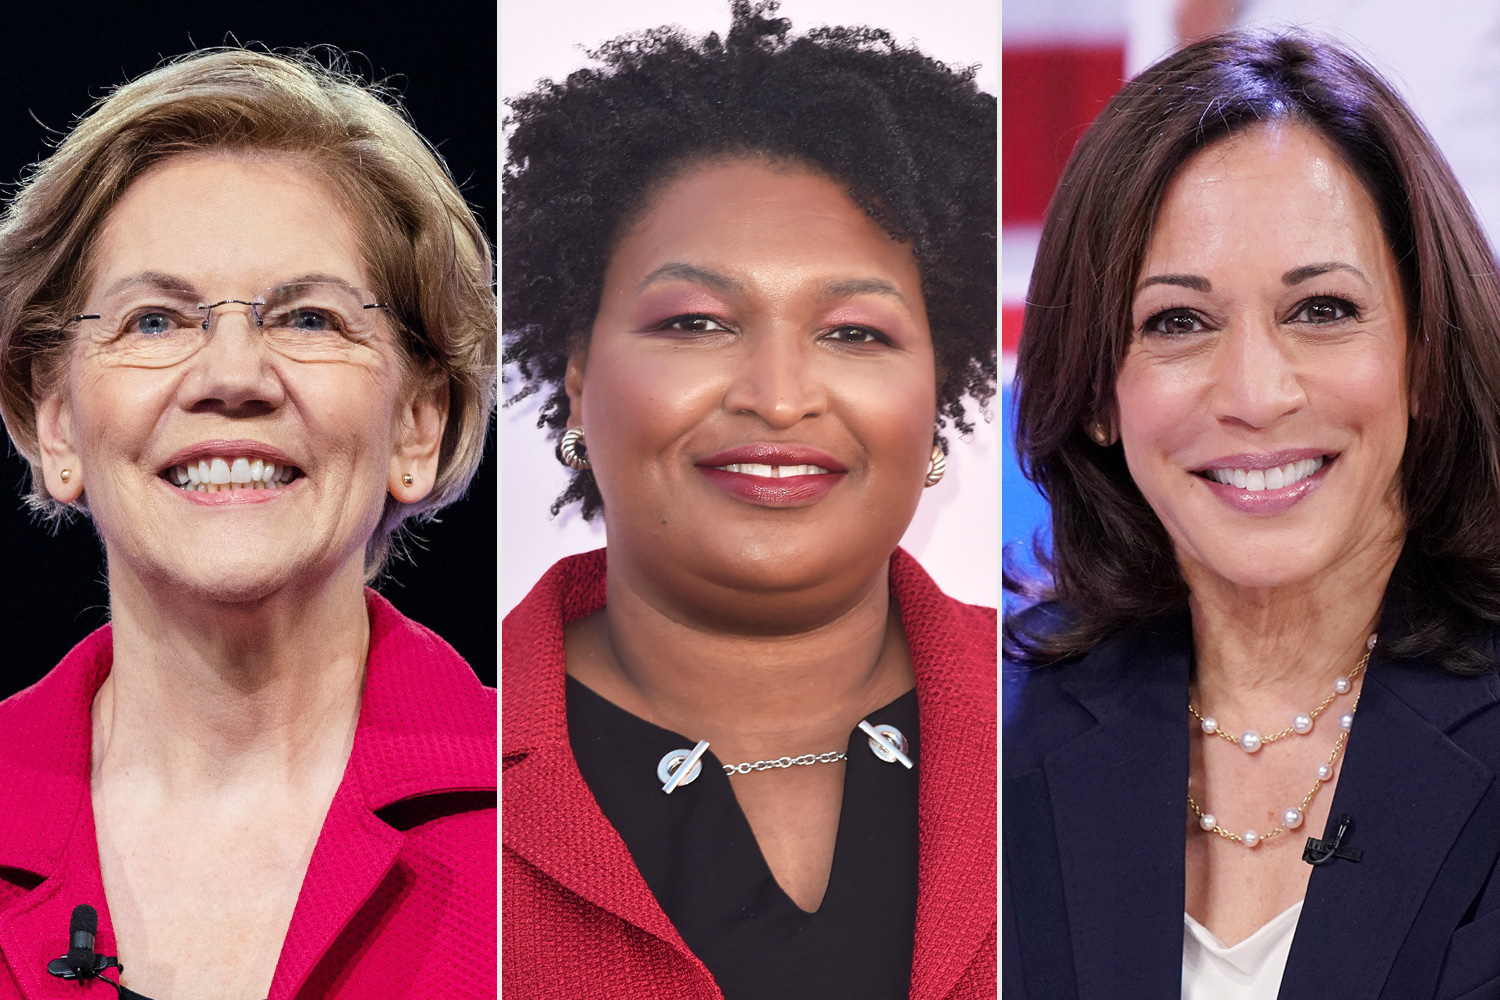 Elizabeth Warren, Stacey Abrams, and Kamala Harris Say They Would Be Joe Biden's Vice President